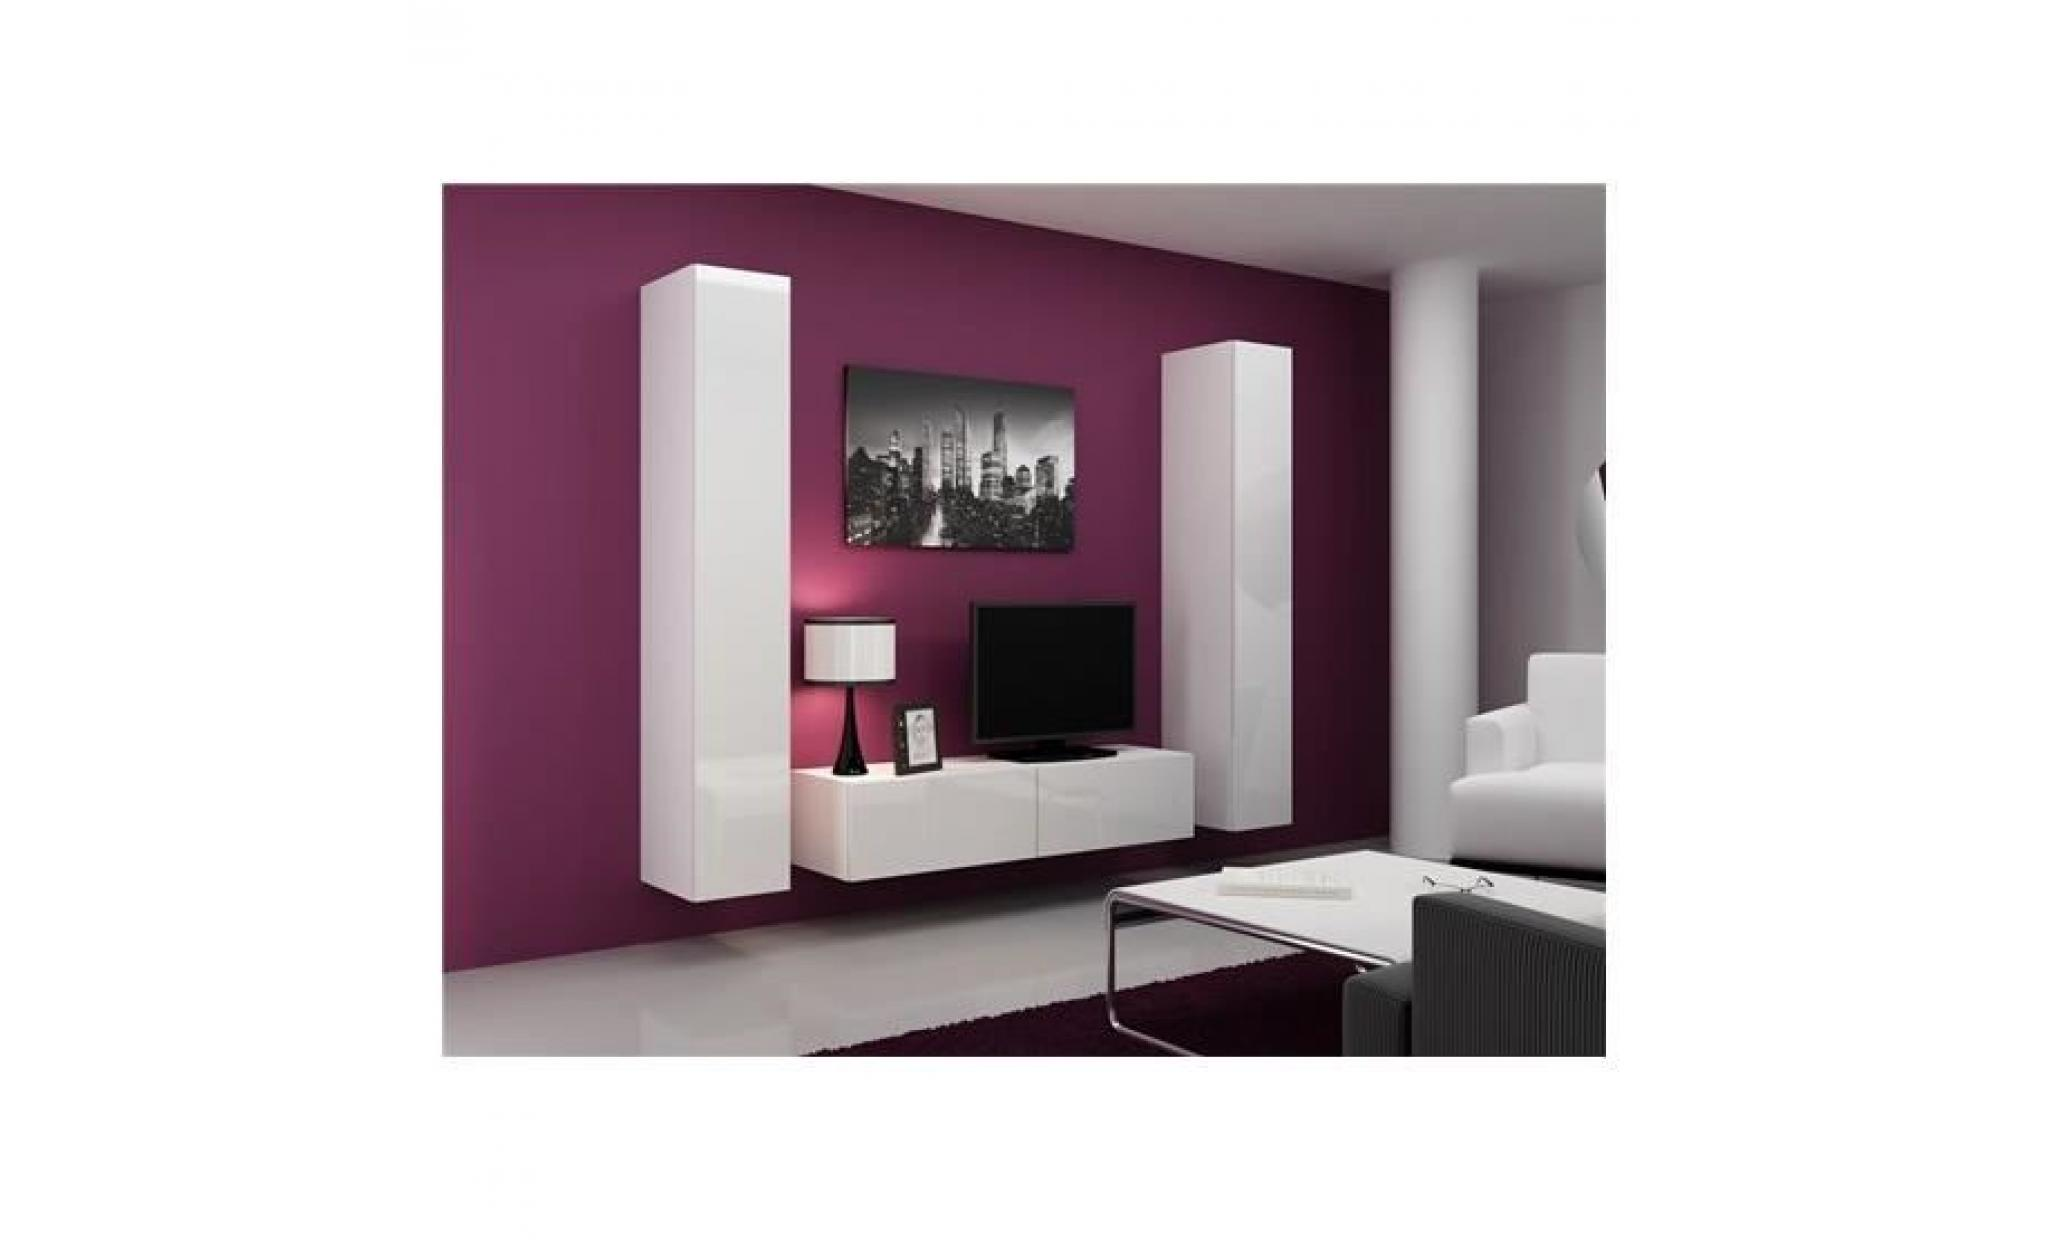 meuble tv design suspendu vini blanc achat vente meuble tv pas cher couleur et. Black Bedroom Furniture Sets. Home Design Ideas